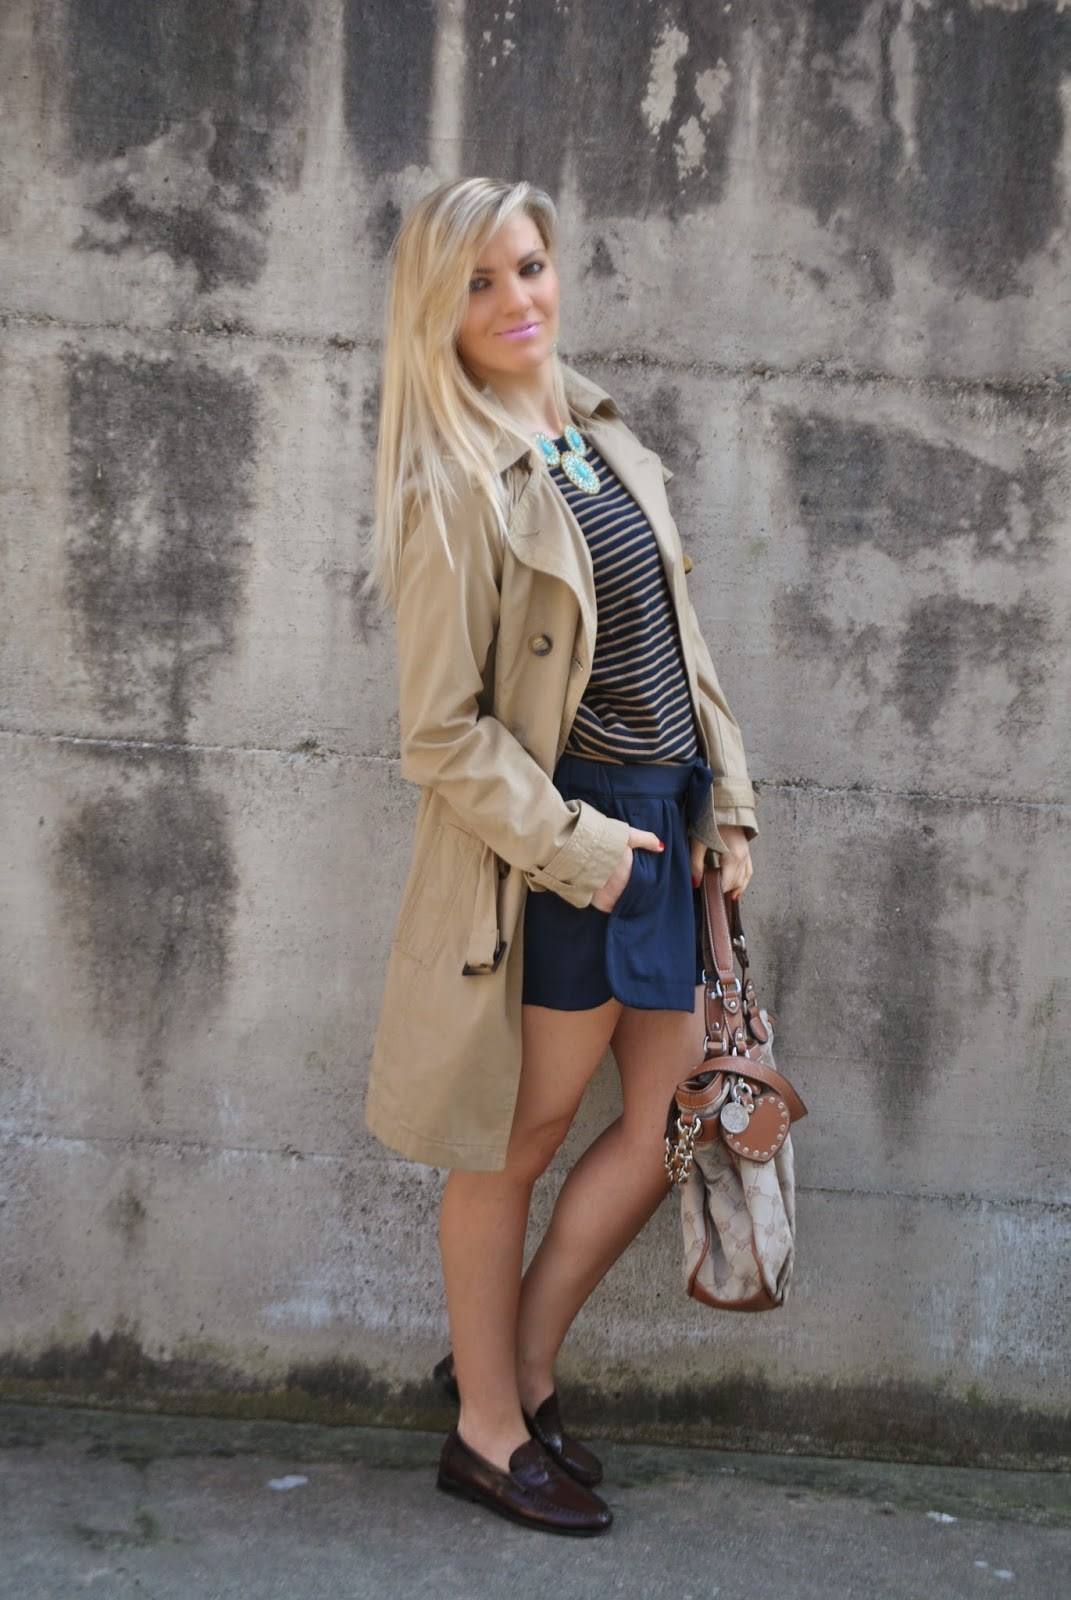 outfit trench beige come abbinare il trench outfit blu mariafelicia magno colorblock by felym mariafelicia magno fashion blogger come abbinare il blu outfit borsa marrone outfit shorts blu outfit a righe outfit maglione a righe outfit primaverili casual outfit primaverili donna outfit aprile 2015 outfit a righe come abbinare le righe  spring outfit trench outfit blue outfit how to wear trench how to wear blue how to wear stripes fashion blogger italiane fashion blog italiani ragazze bionde fashion bloggers italy blonde hair blonde girl mac cosmetics rossetto rosa mac cosmetics mac cosmetics lipstick mango sisley pimkie fornarina lumberjack